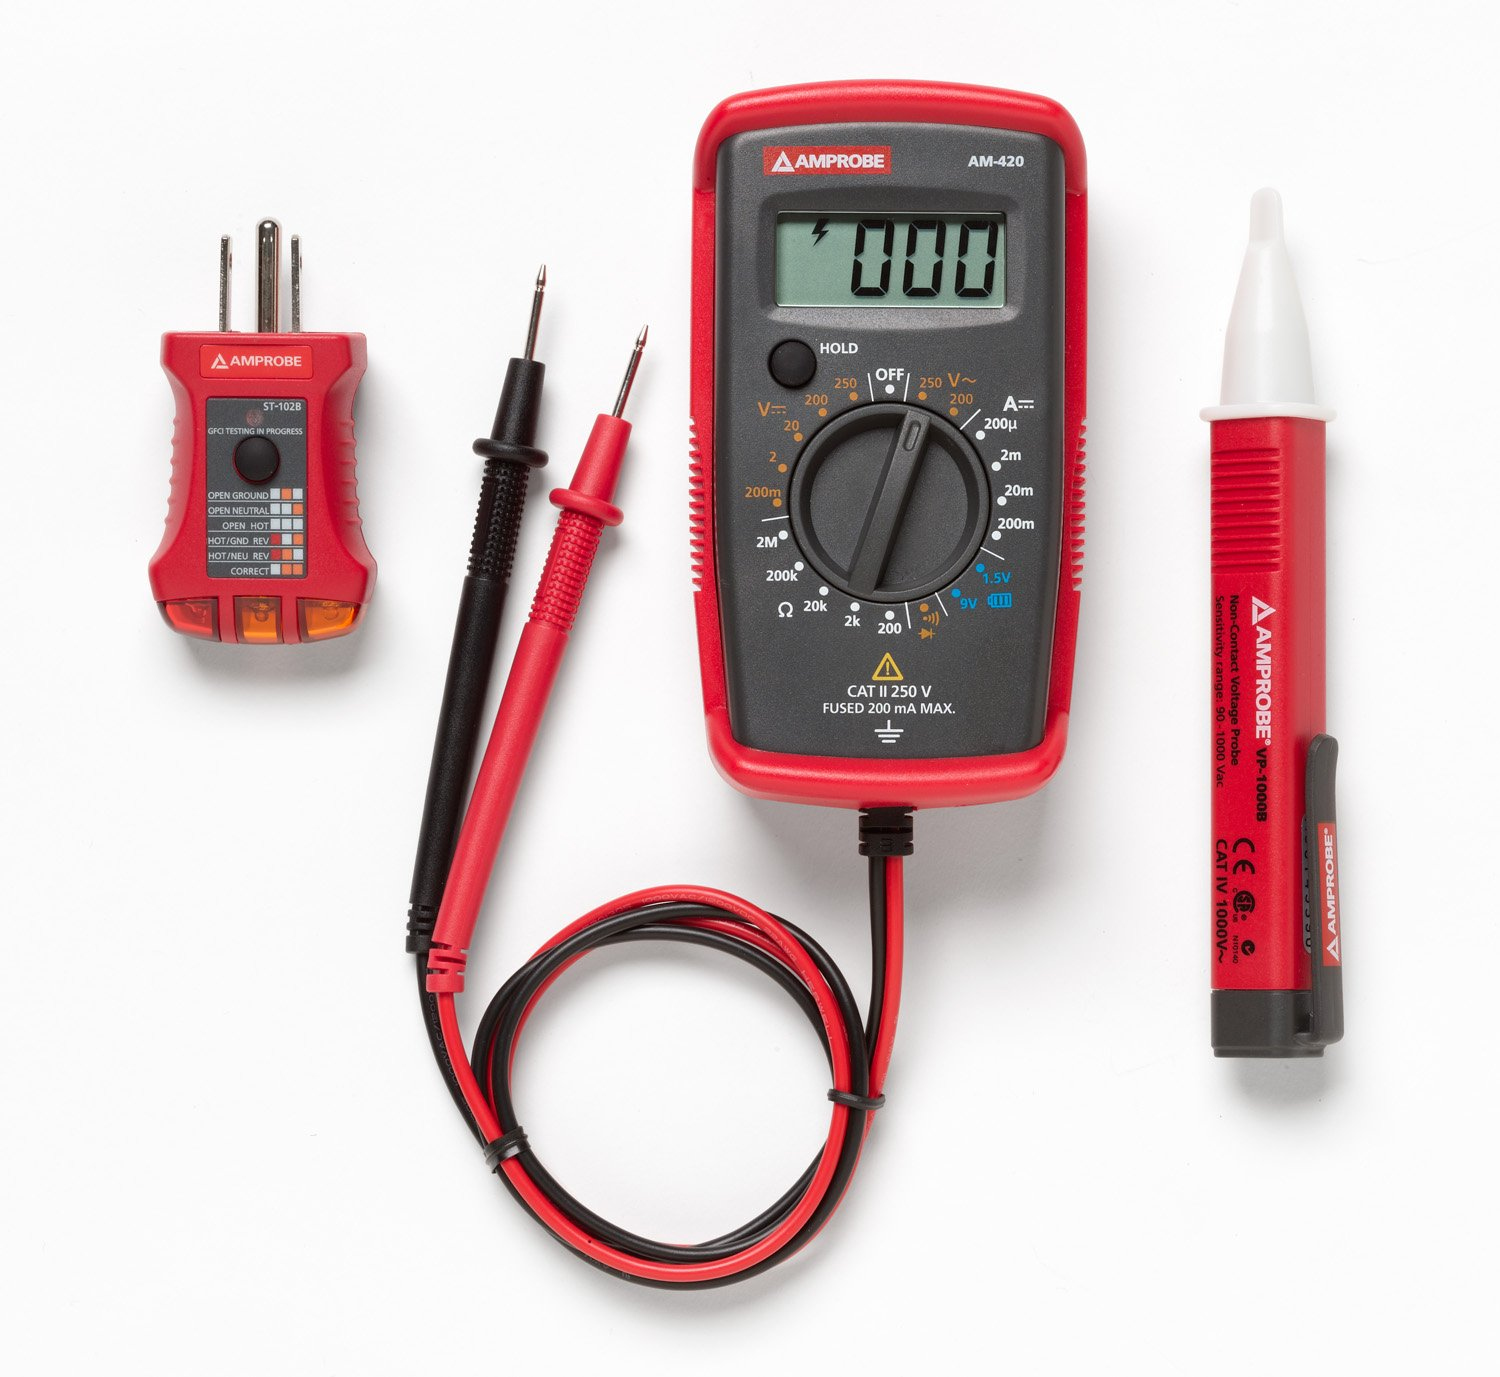 Amprobe PK-110 Electrical Test Kit with Voltage Probe: Amazon.com: Home  Improvement